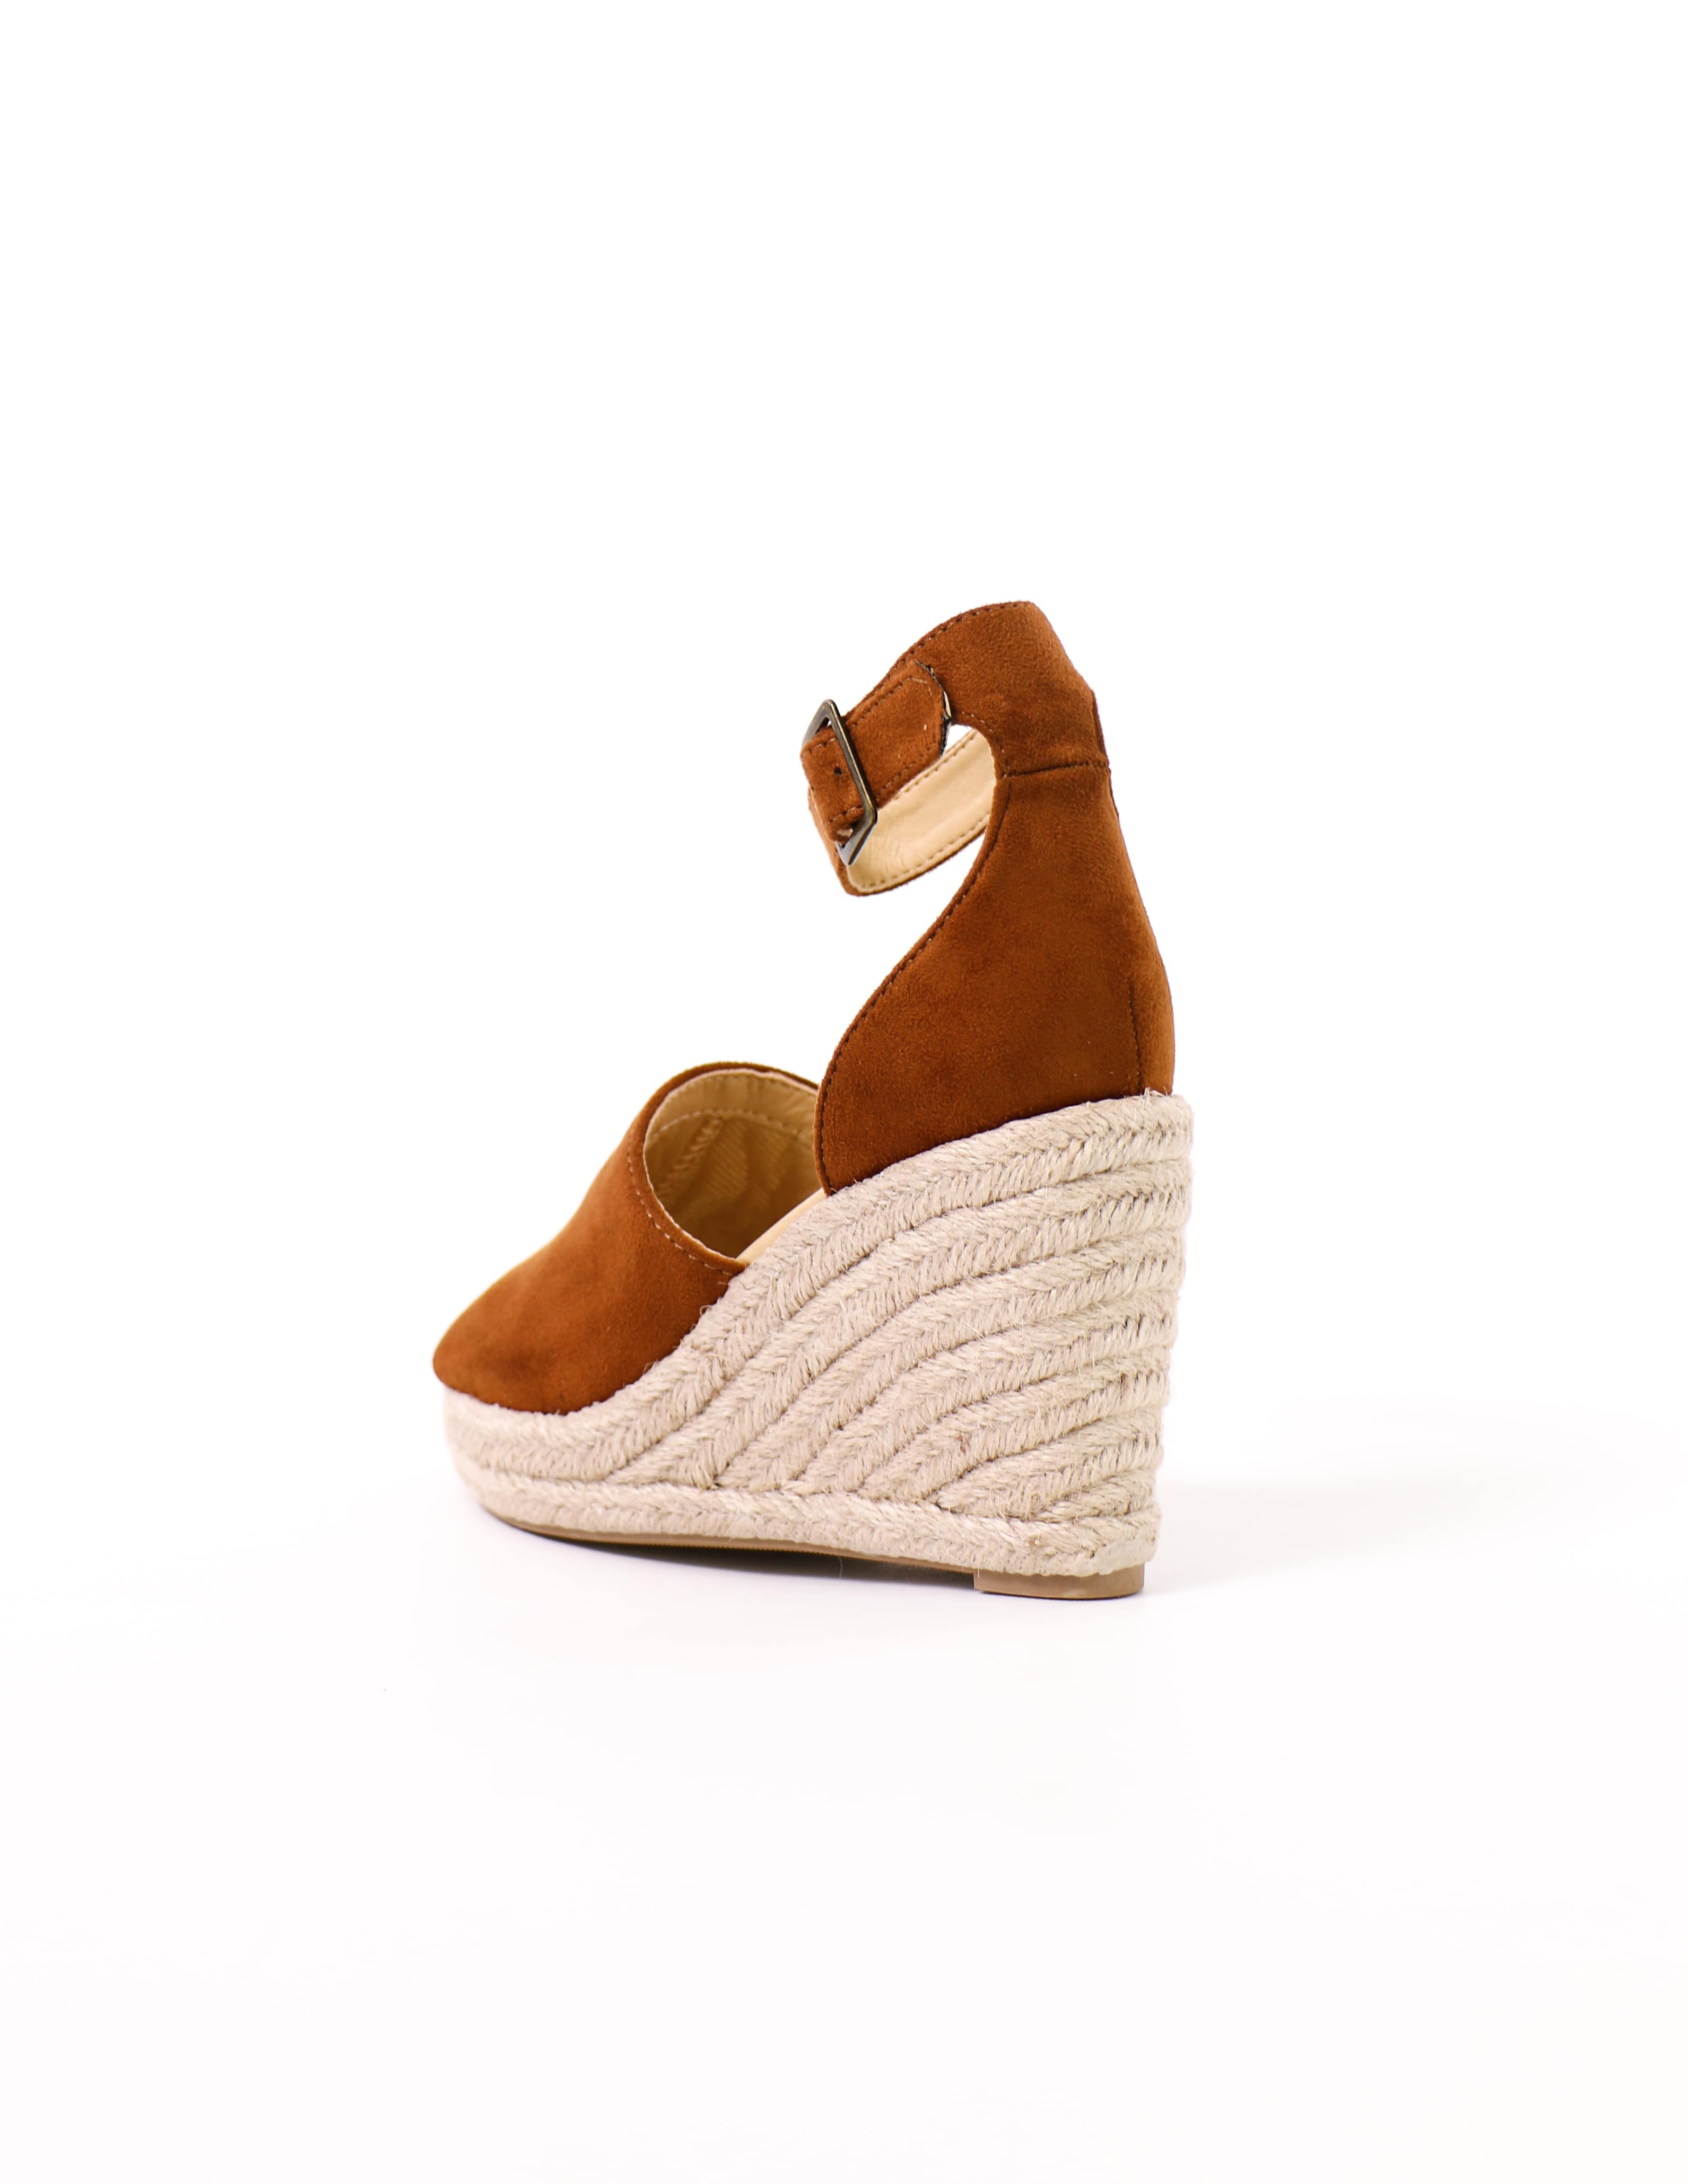 back of the braided esparto rope wrapped this is not a espadrille wedge sandal in tan - elle bleu shoes